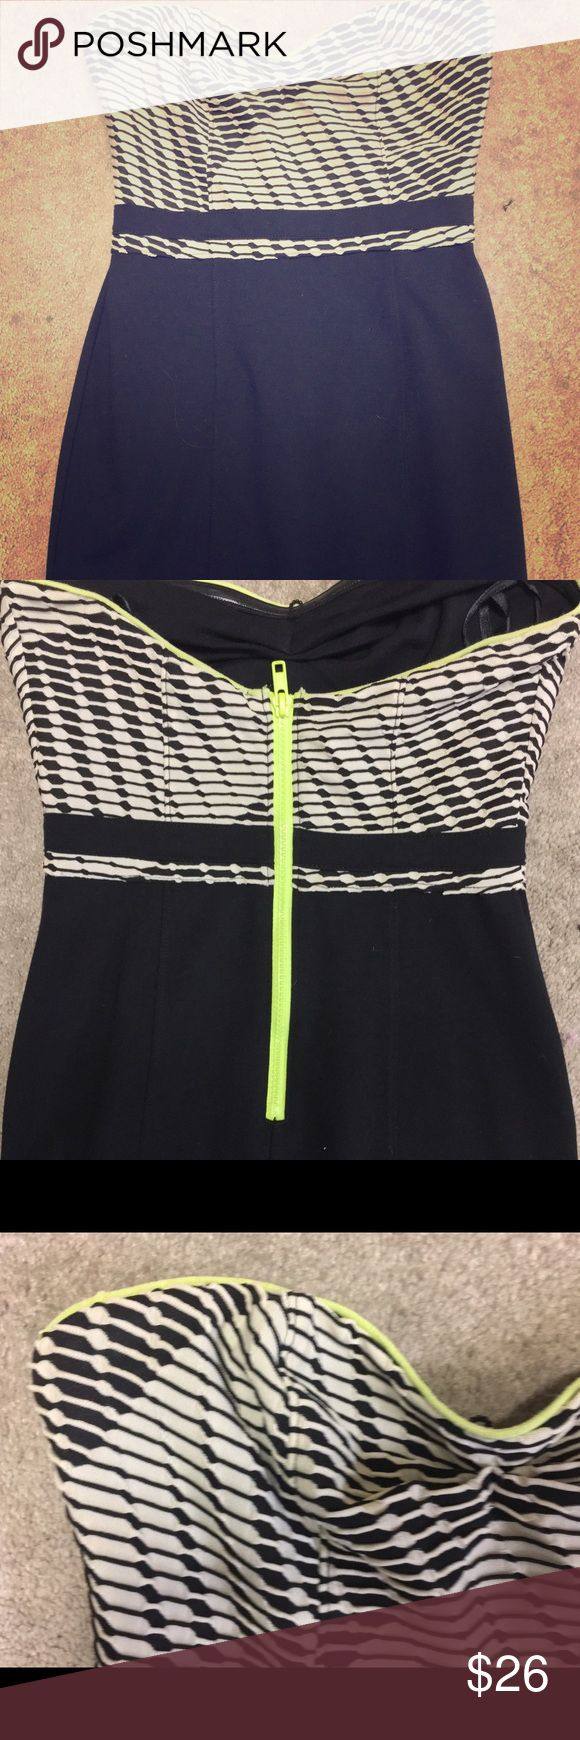 Silence + Noise Strapless Bodycon Dress Silence + Noise black and white with neon yellow piping detail Strapless bodycon dress. Dress has black and white sweetheart neckline with neon yellow piping and exposed neon yellow back zipper. Bottom is solid black and fitted. Worn once! Size Small. silence + noise Dresses Mini